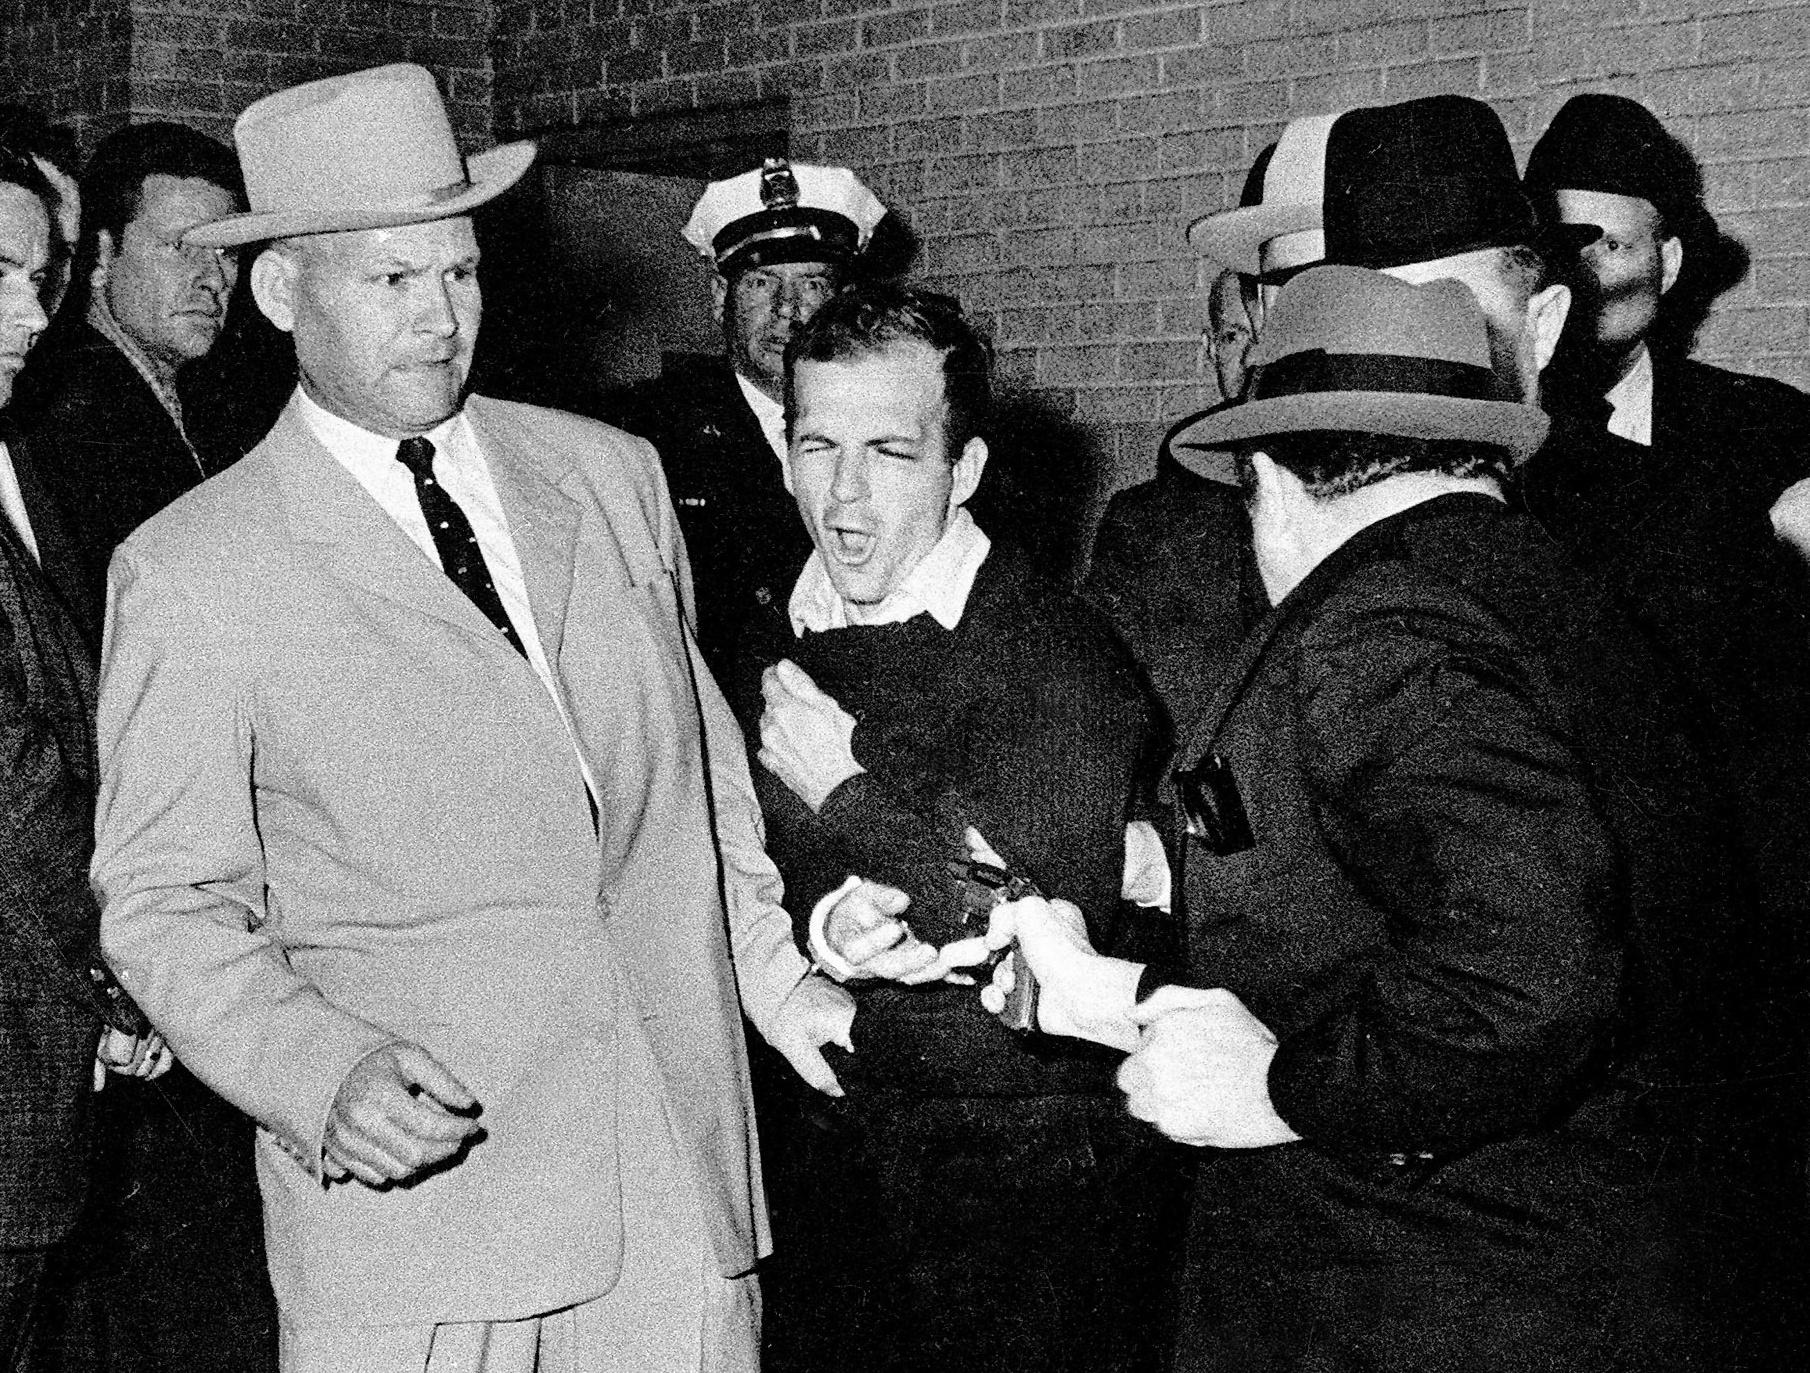 James R Leavelle, detective handcuffed to Lee Harvey Oswald when he was shot, dies aged 99